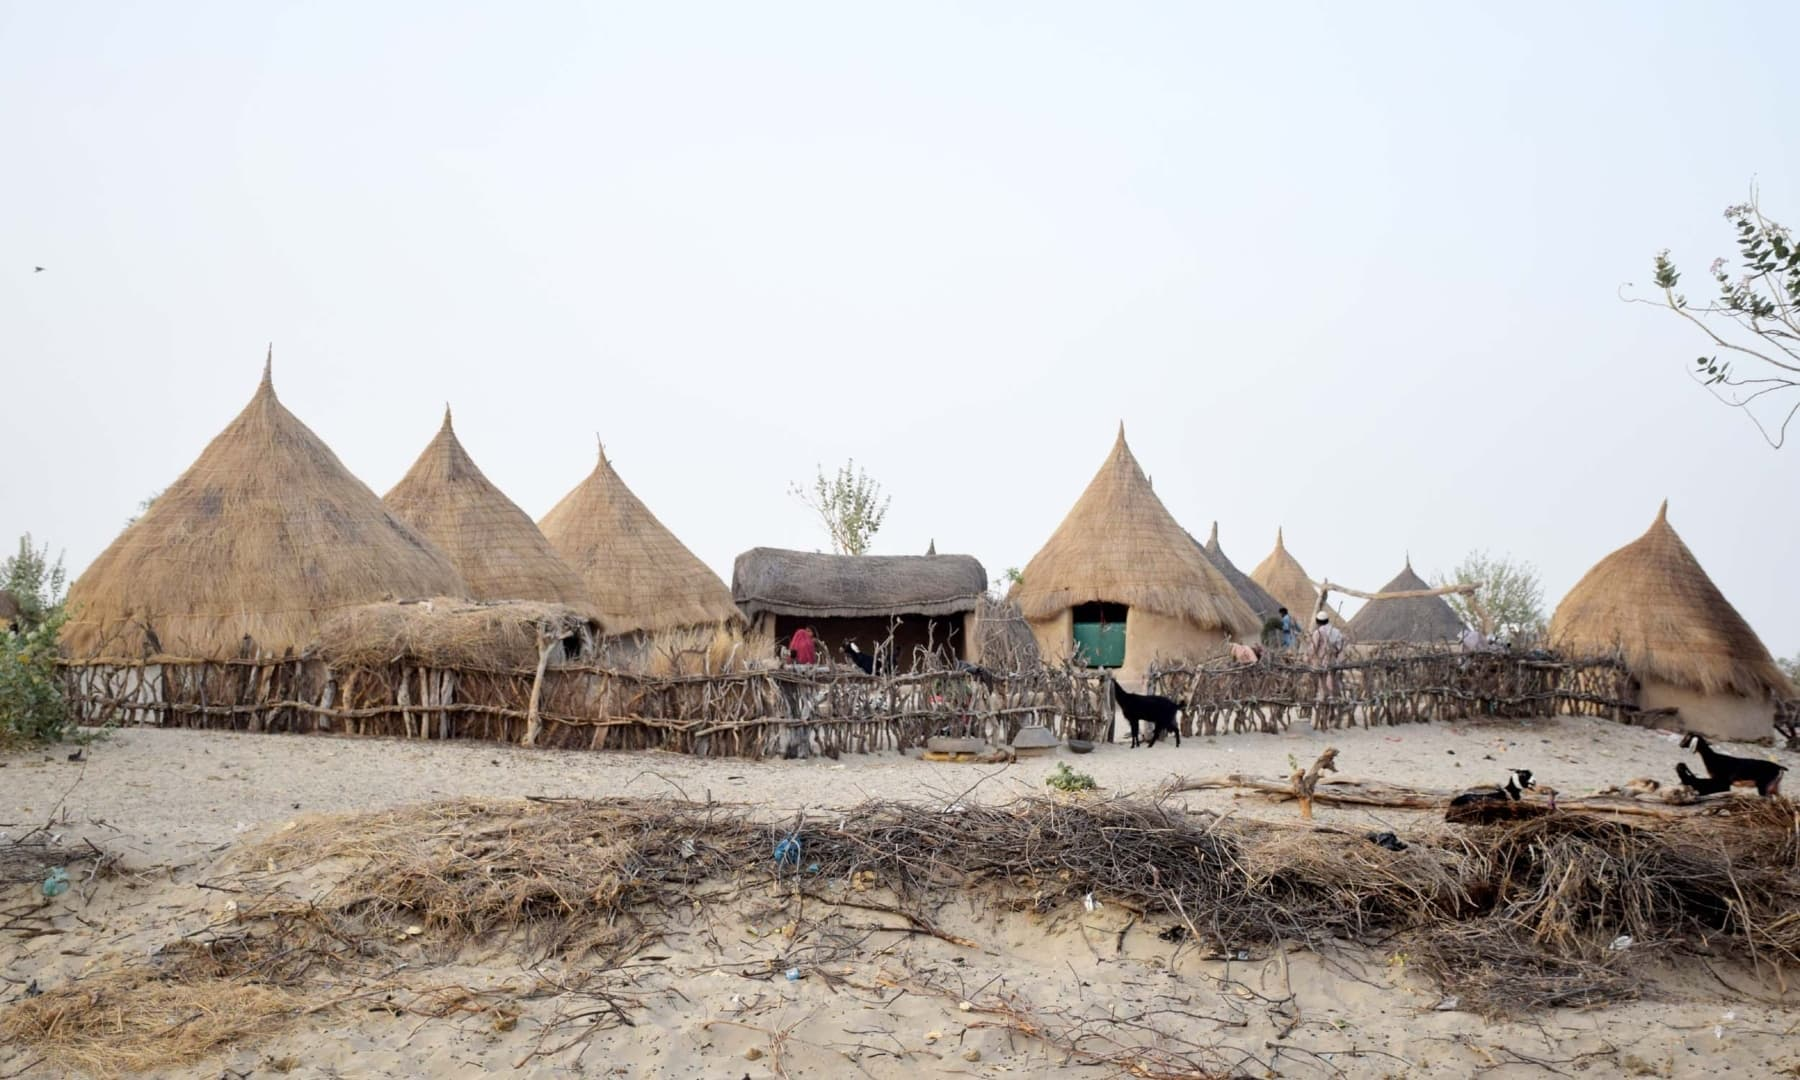 Huts made of thatched straw dot the desert's landscape in Achhro Thar, Khipro, Sindh. — Photo by Umair Ali